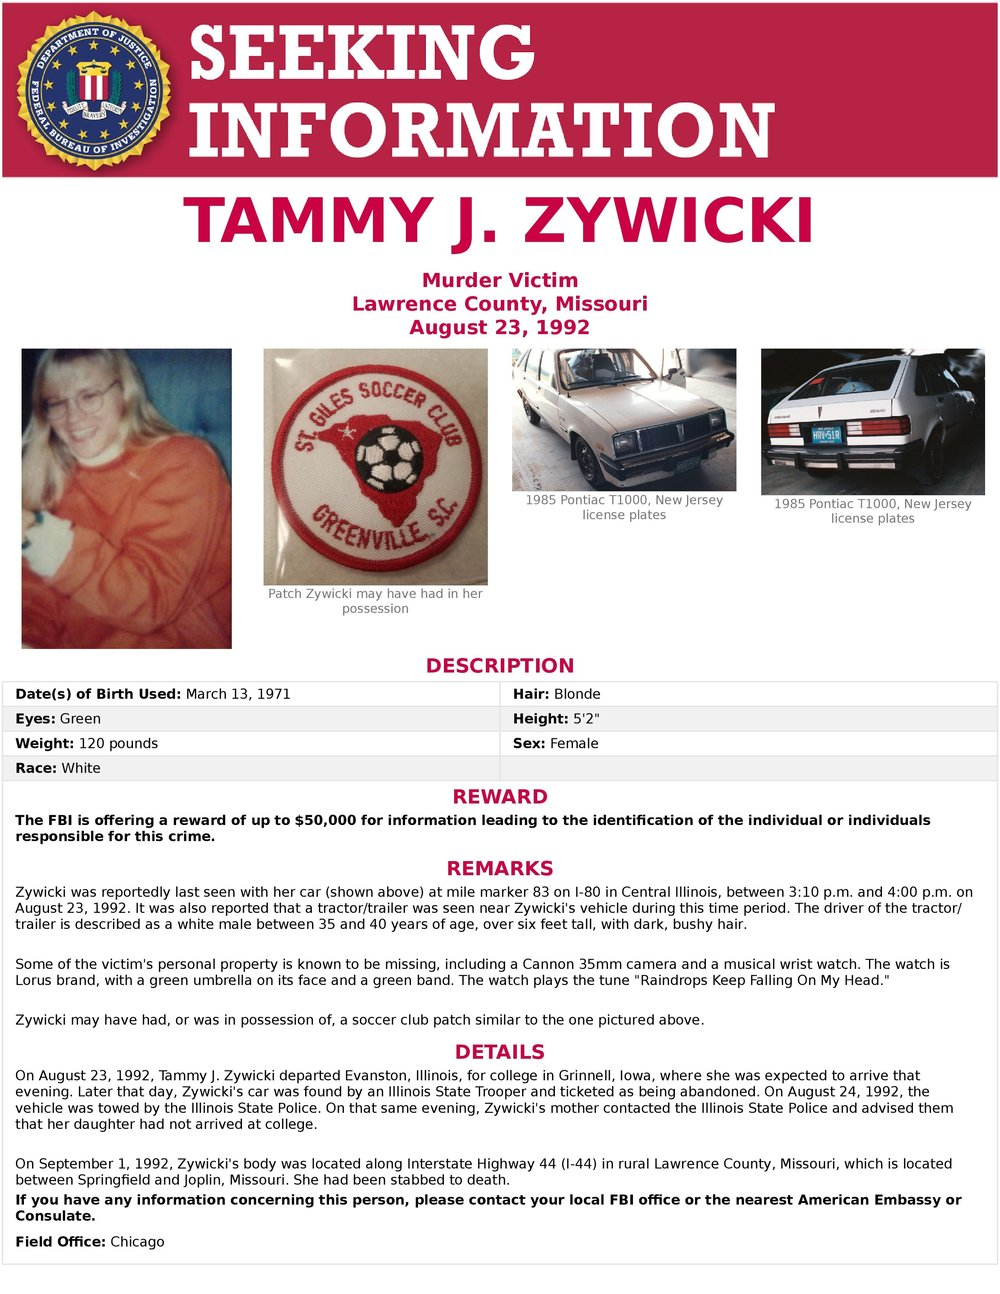 tammy zywicki - 8.23.1992 21 year old Tammy was having car issues dropping off her brother in Evanston and heading back to her home in Iowa. She was last seen standing next to her her white Pontiac T1000 on the I-80 mile marker 83 in LaSalle County between 3:10PM-4PM with a truck driver described as 30-45 6' with dark,bushy, collar length hair driving a white tractor trailer with 2 brown diagonal strips on the side. Her vehicle was found locked with her things inside.9.1.1992 Tammy was found deceased 100 miles away on I-44 in Lawrence County (between Springfield & Joplin) in a red blanket sealed with duct tape. Lawrence County Coroner determined she was stabbed once in the arm and 7 times in a circle around her heart and sexually assaulted.Still missing is her watch, patch from St Giles soccer club shorts, 35MM Canon camera, purse and keys.  (CONT…)